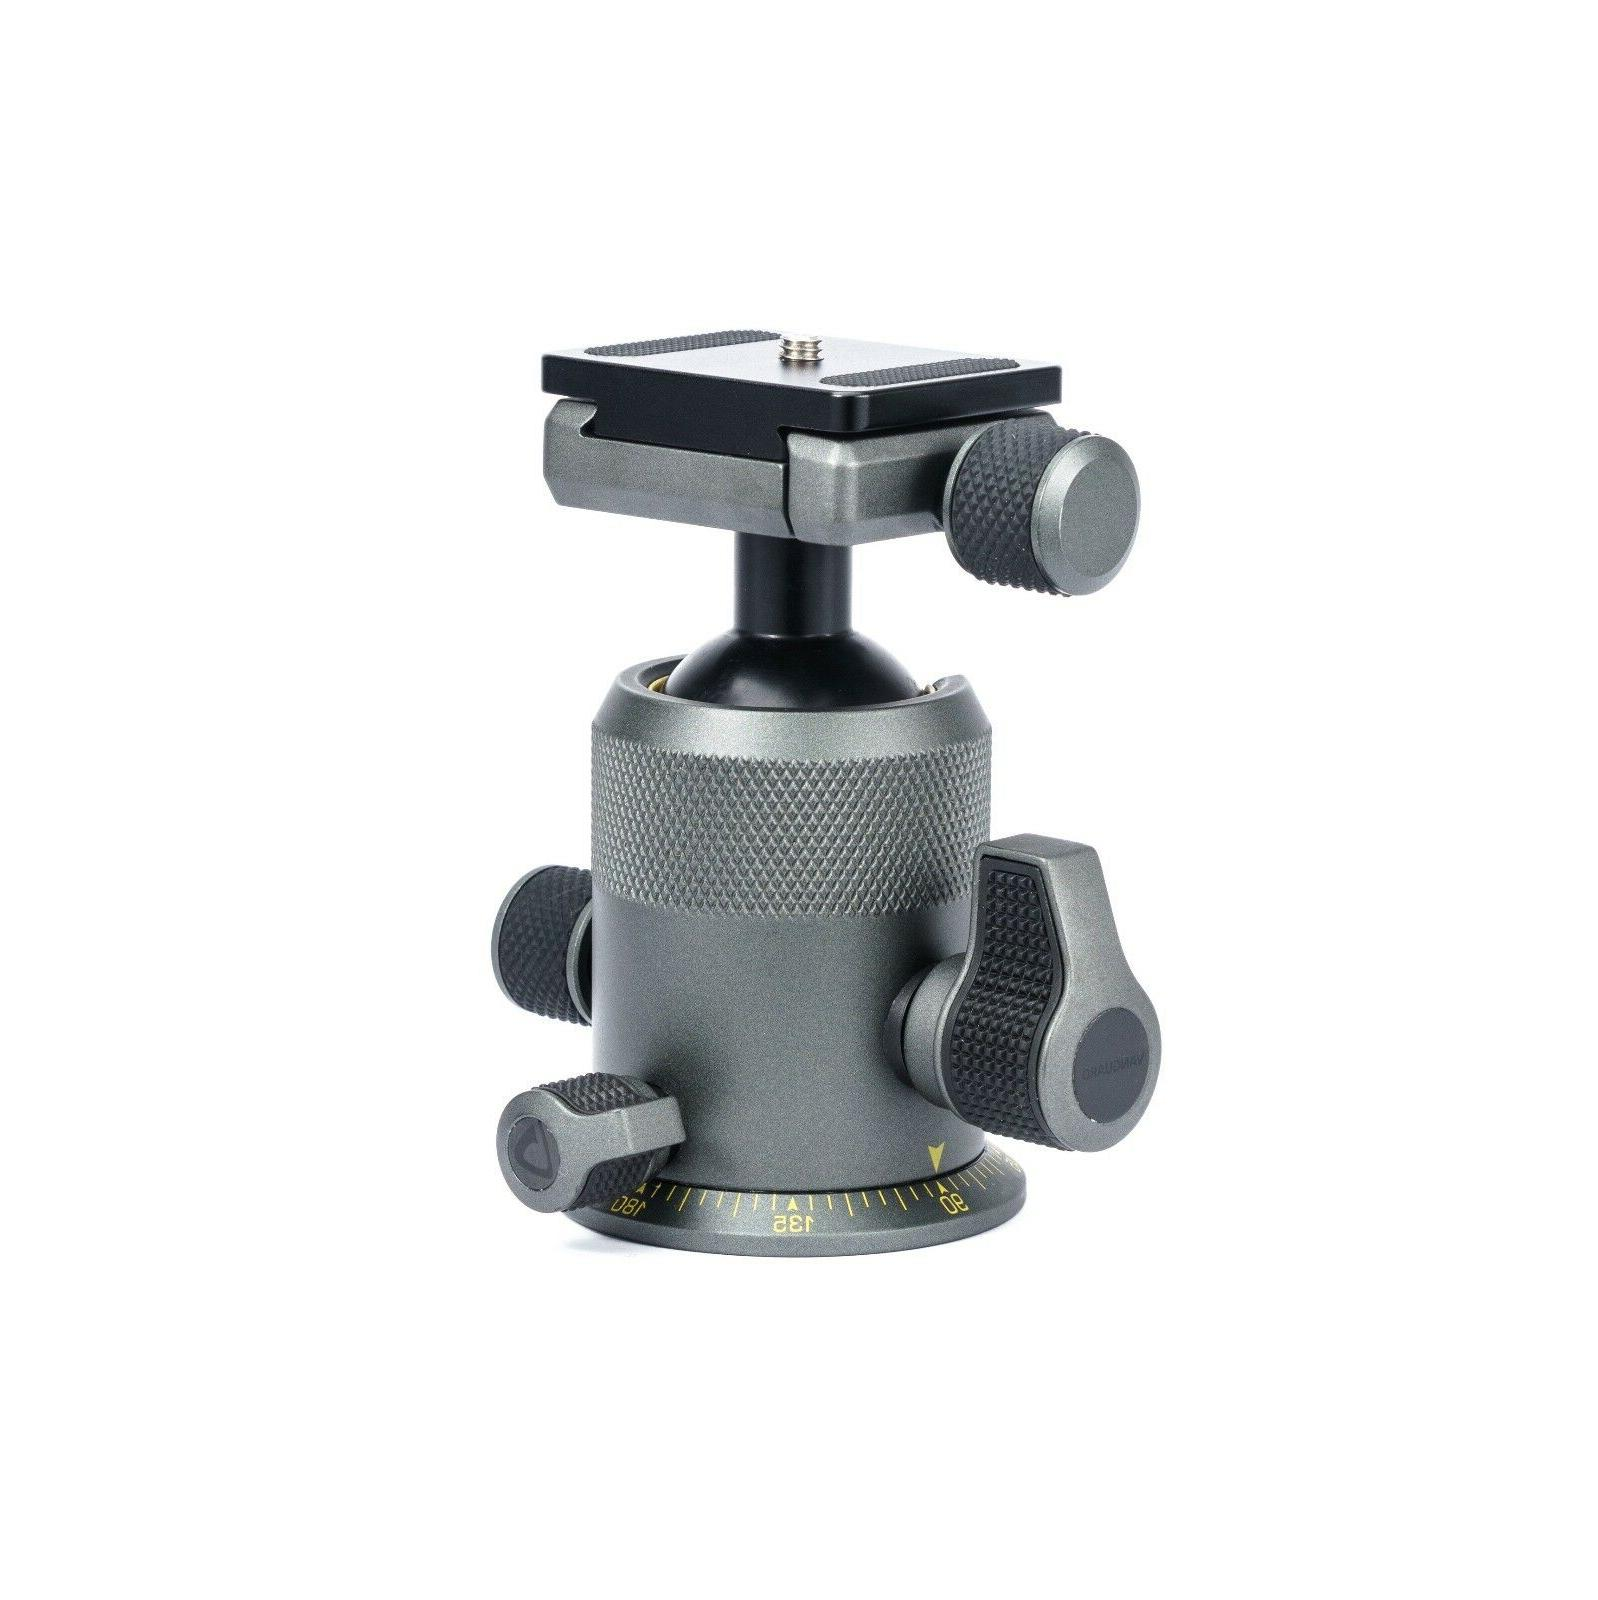 Vanguard Duty 360 Degree Panoramic with Release